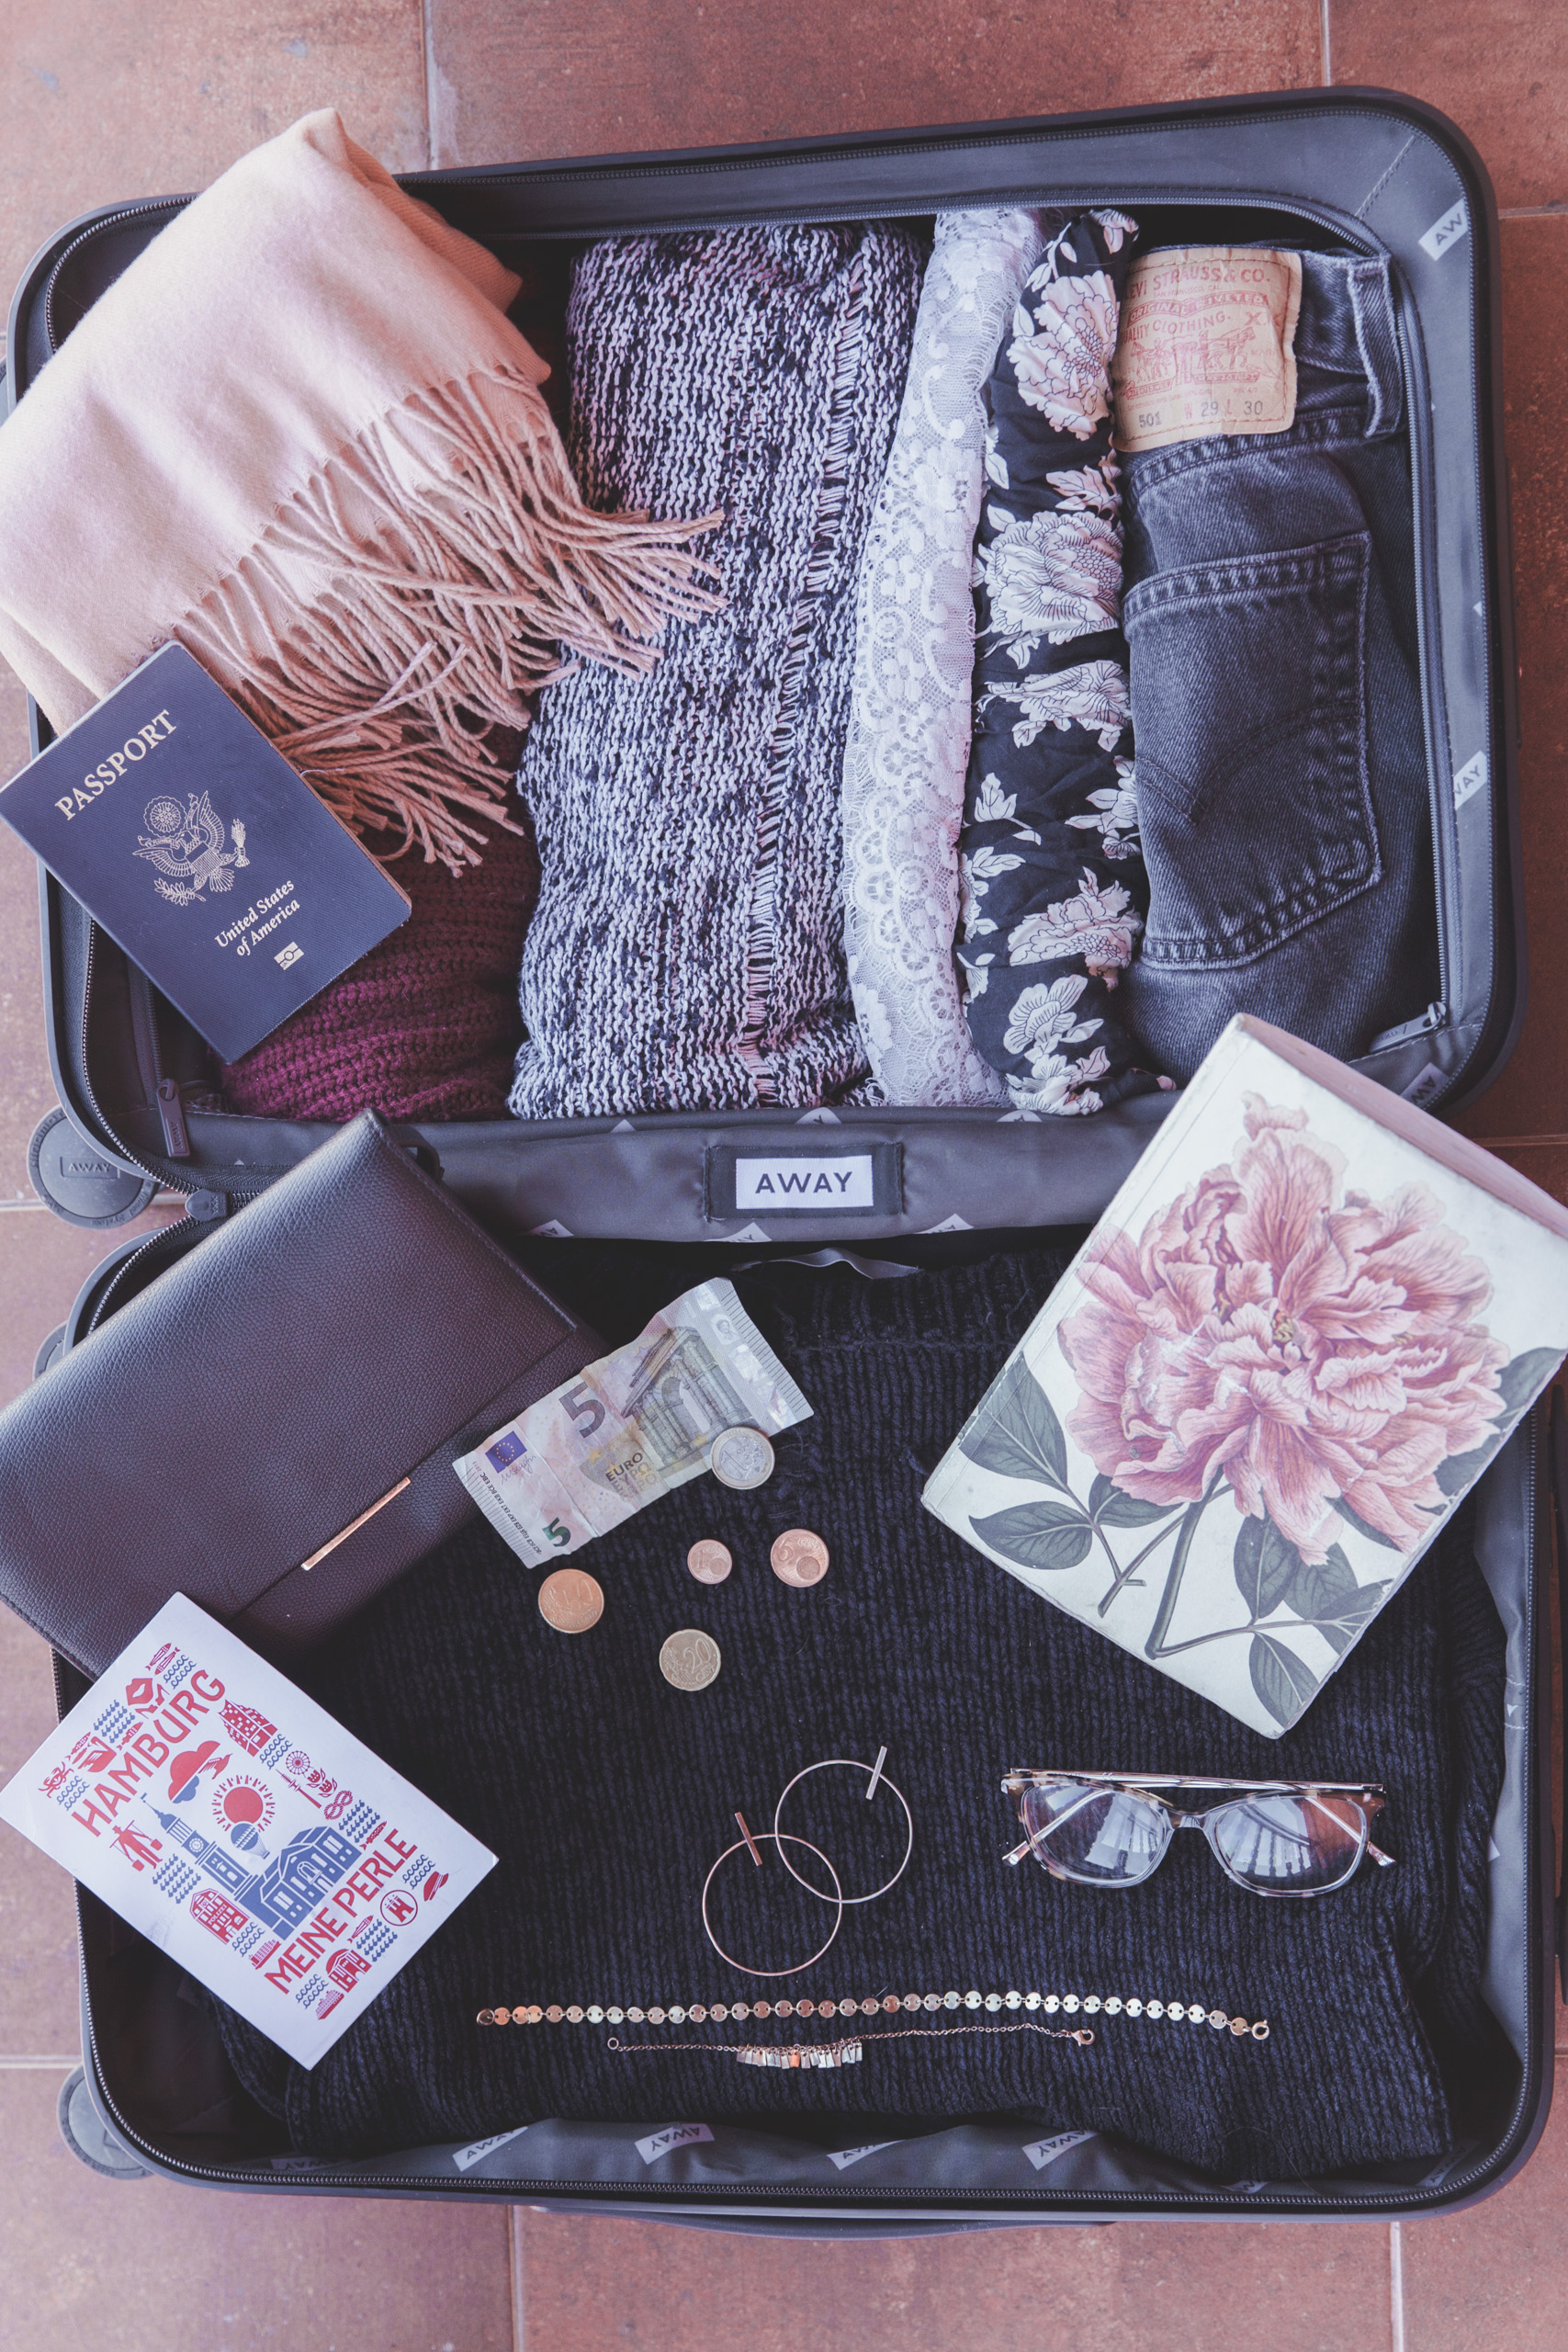 Clothes and other items in a carry on suitcase